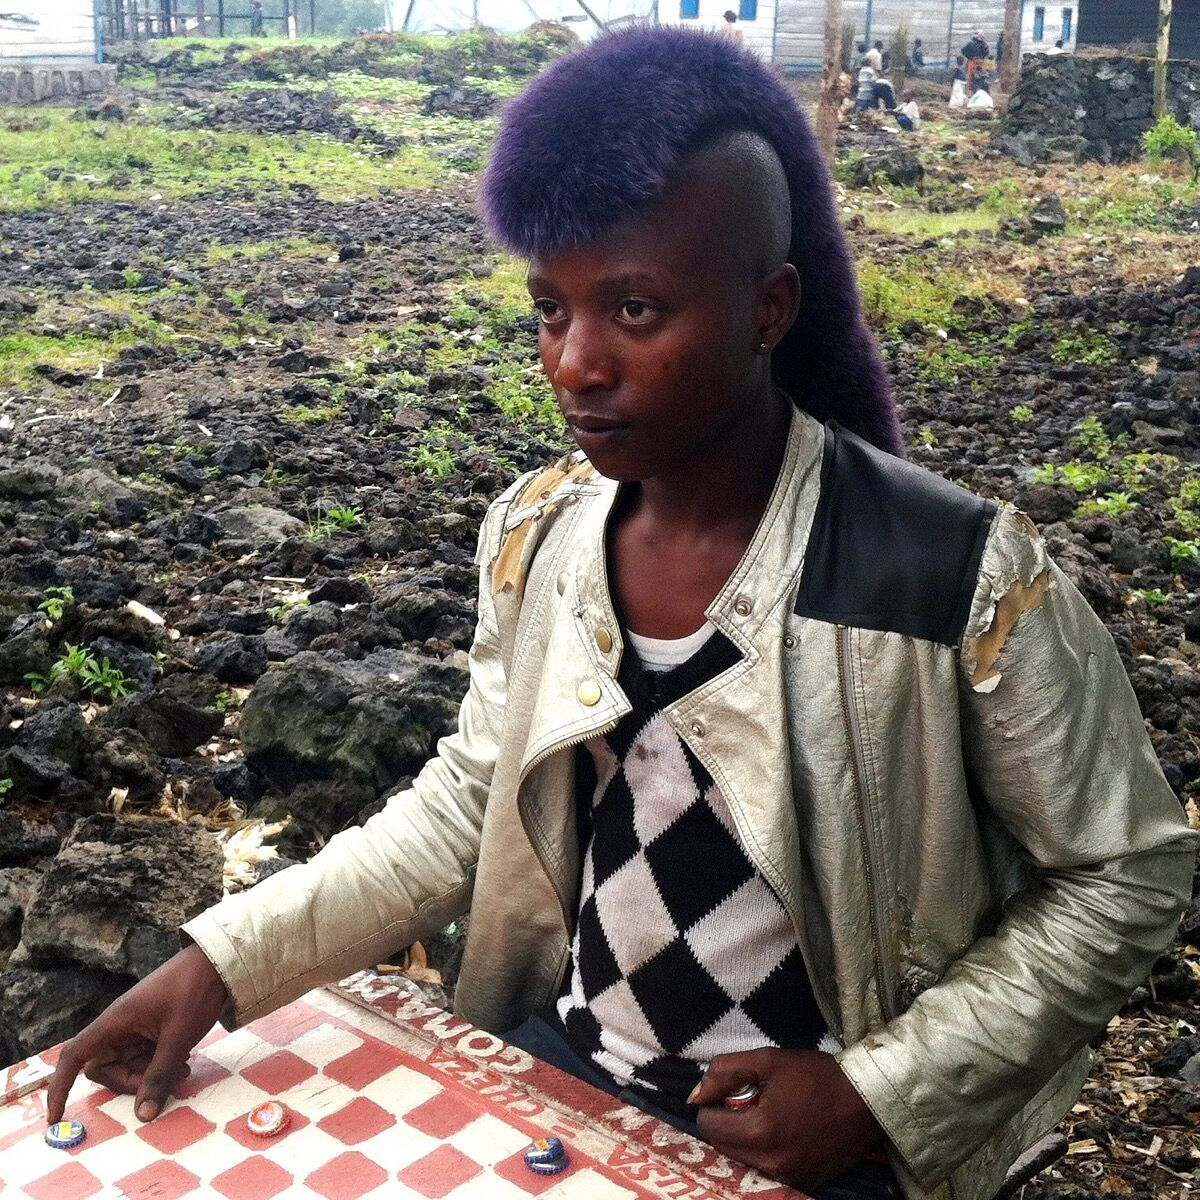 A young Congolese refugee in Goma, Democratic Republic of the Congo.I was impressed by the look of her hair. Photo by @leyuwera1.